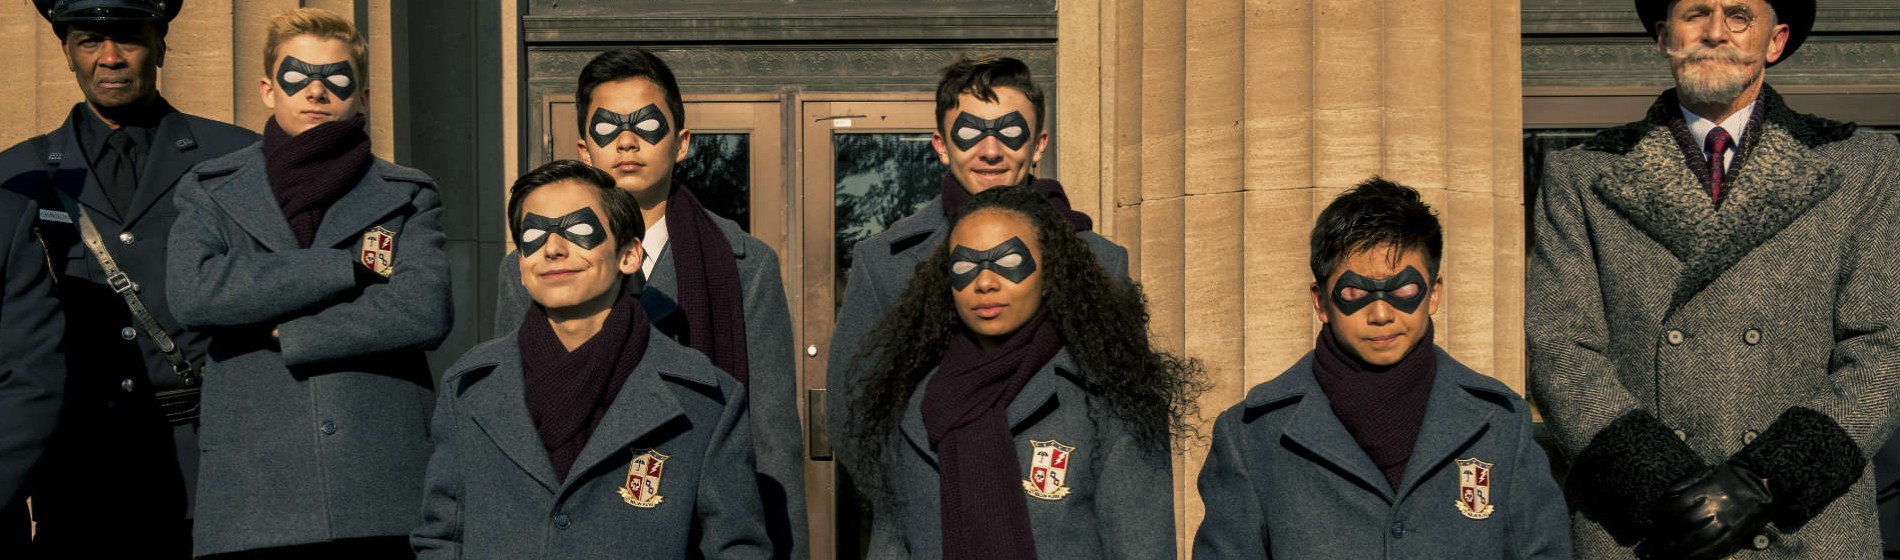 The-Umbrella-Academy-Young-Cast-Feature-Image